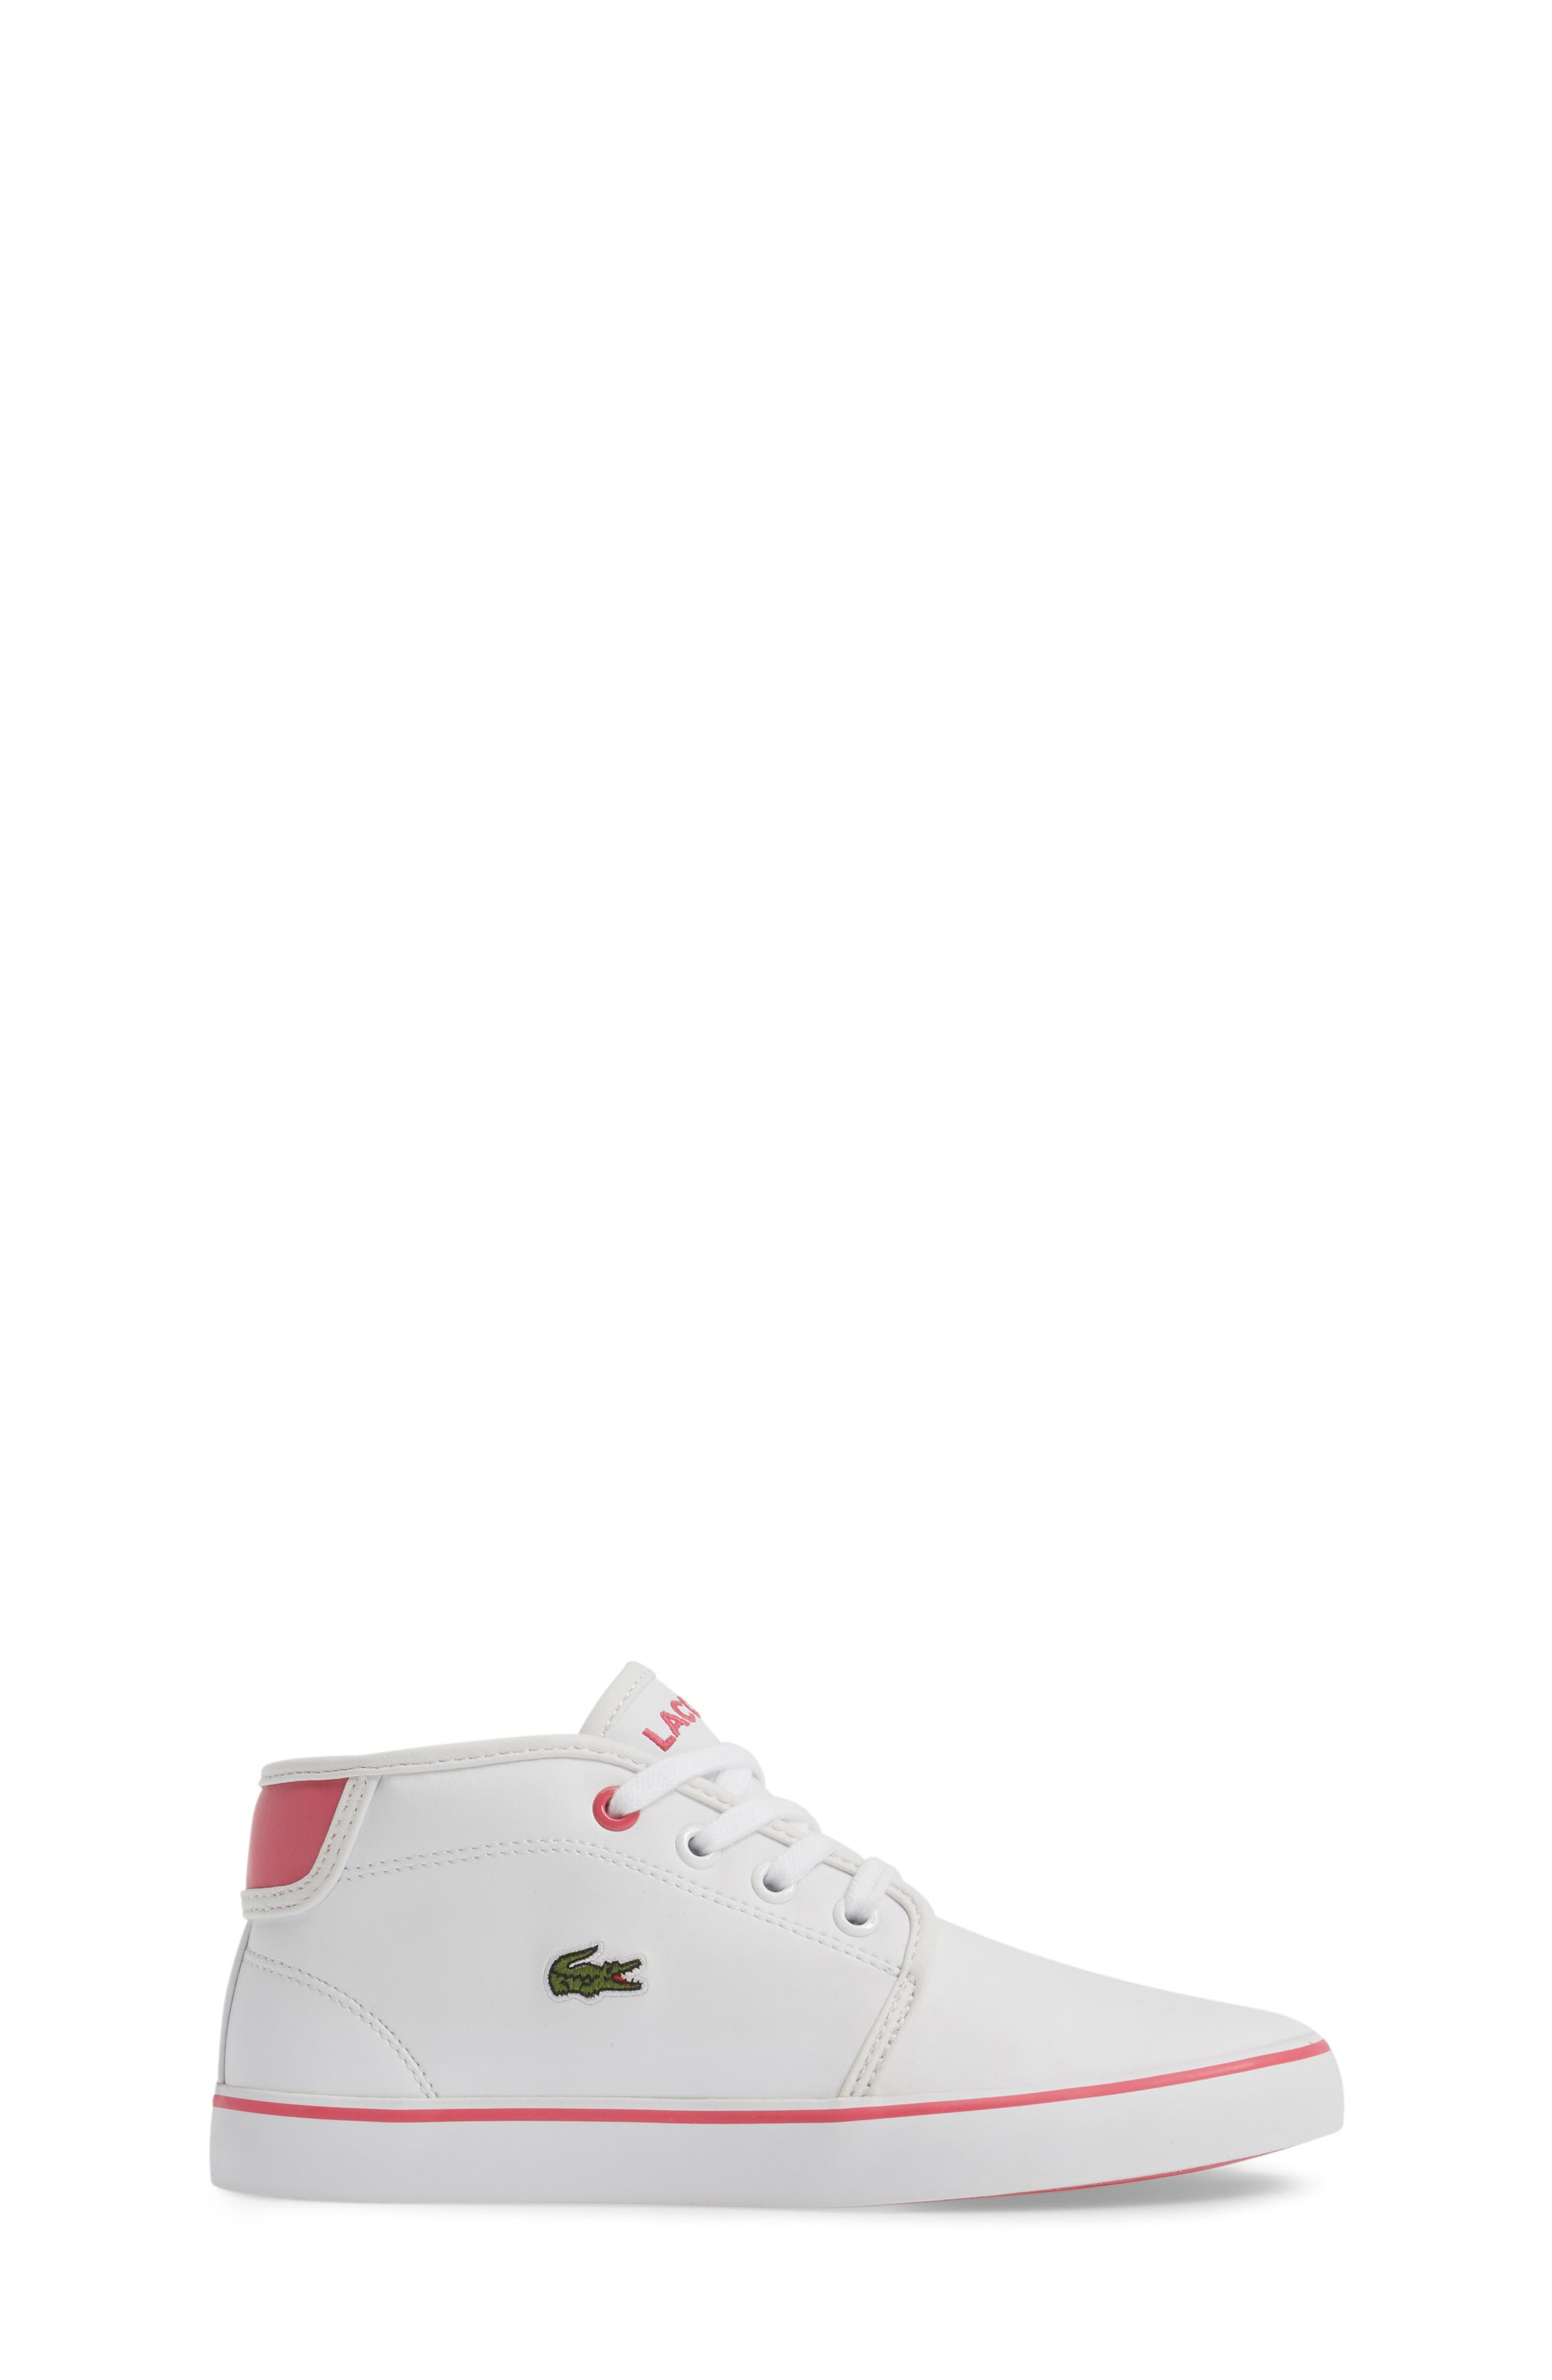 Ampthill Mid-Top Sneaker,                             Alternate thumbnail 3, color,                             161